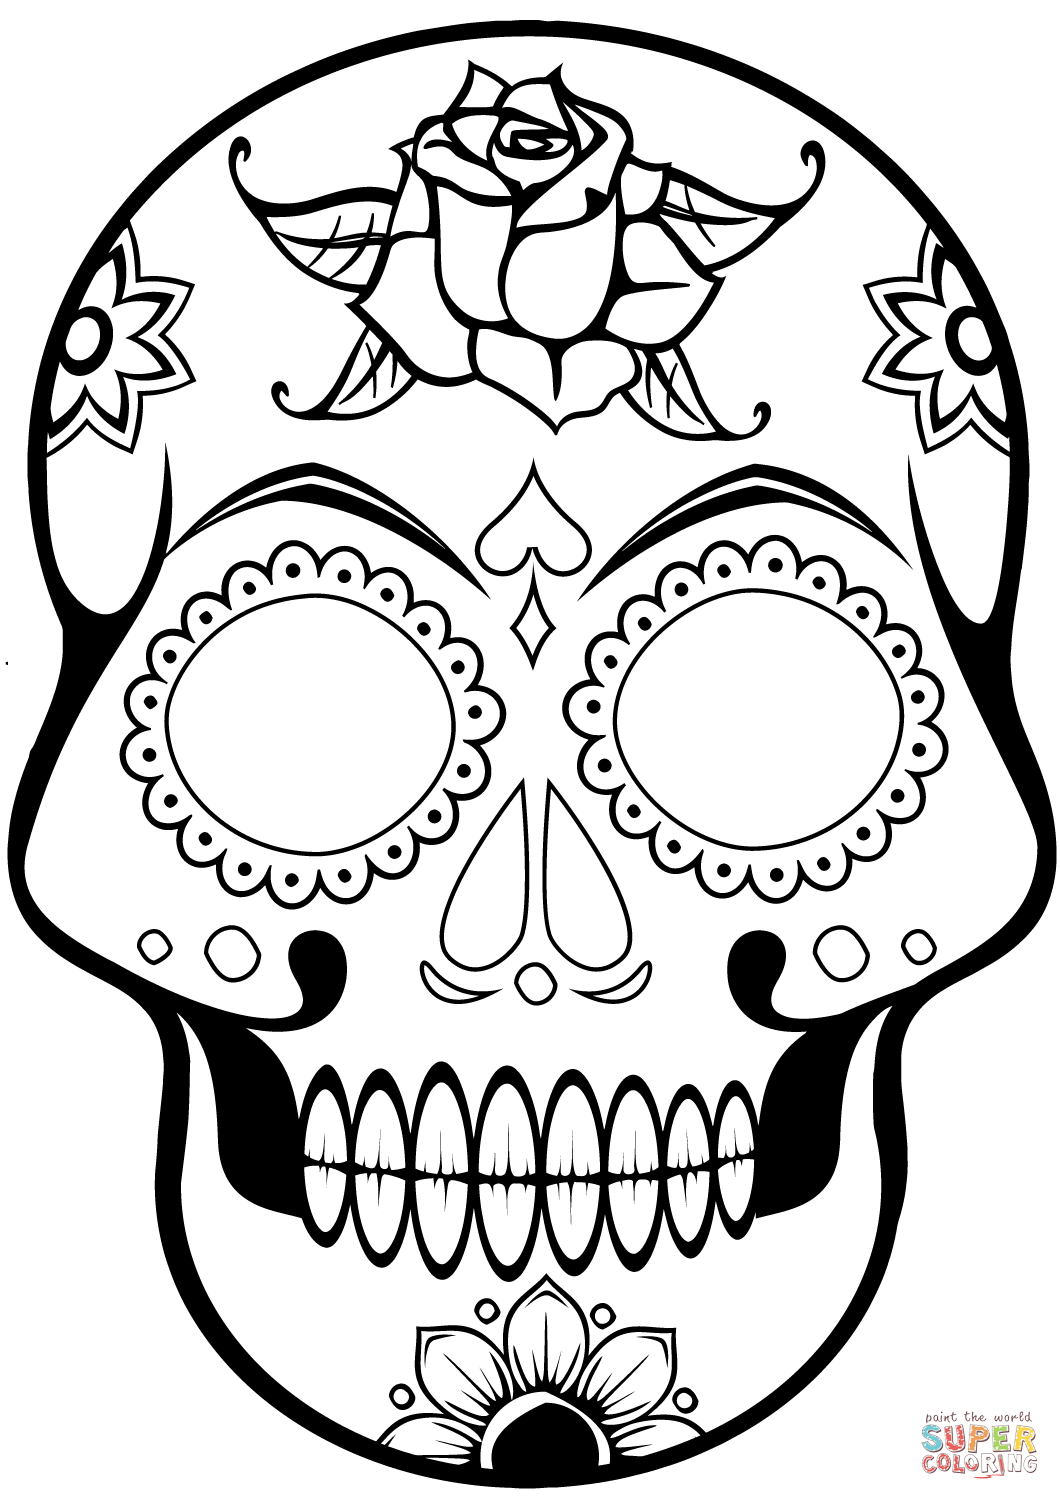 - Sugar Skull Coloring Book Freeintable Pa #2187762 - PNG Images - PNGio